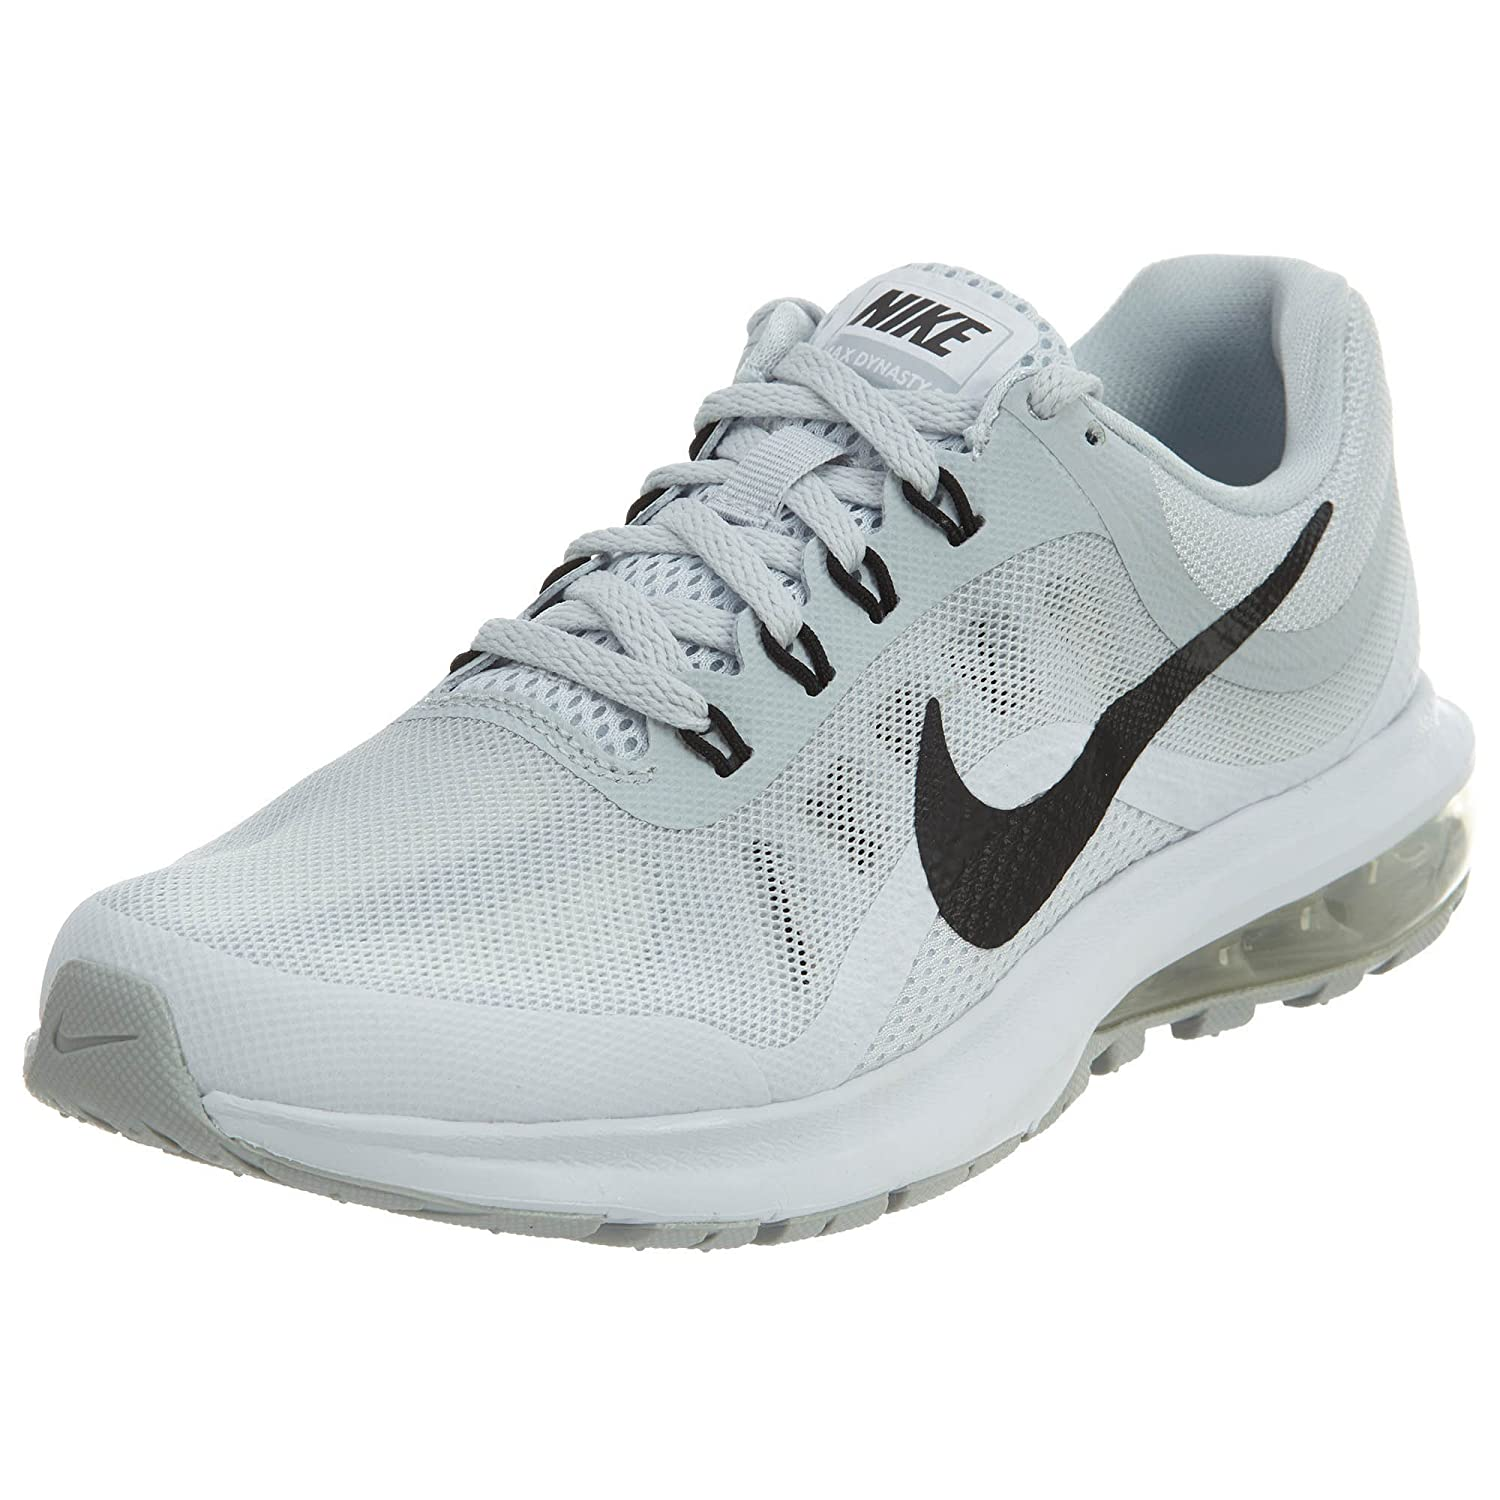 Nike Air Max Dynasty 2 Womens Style: 852445 009 Size: 7 M US